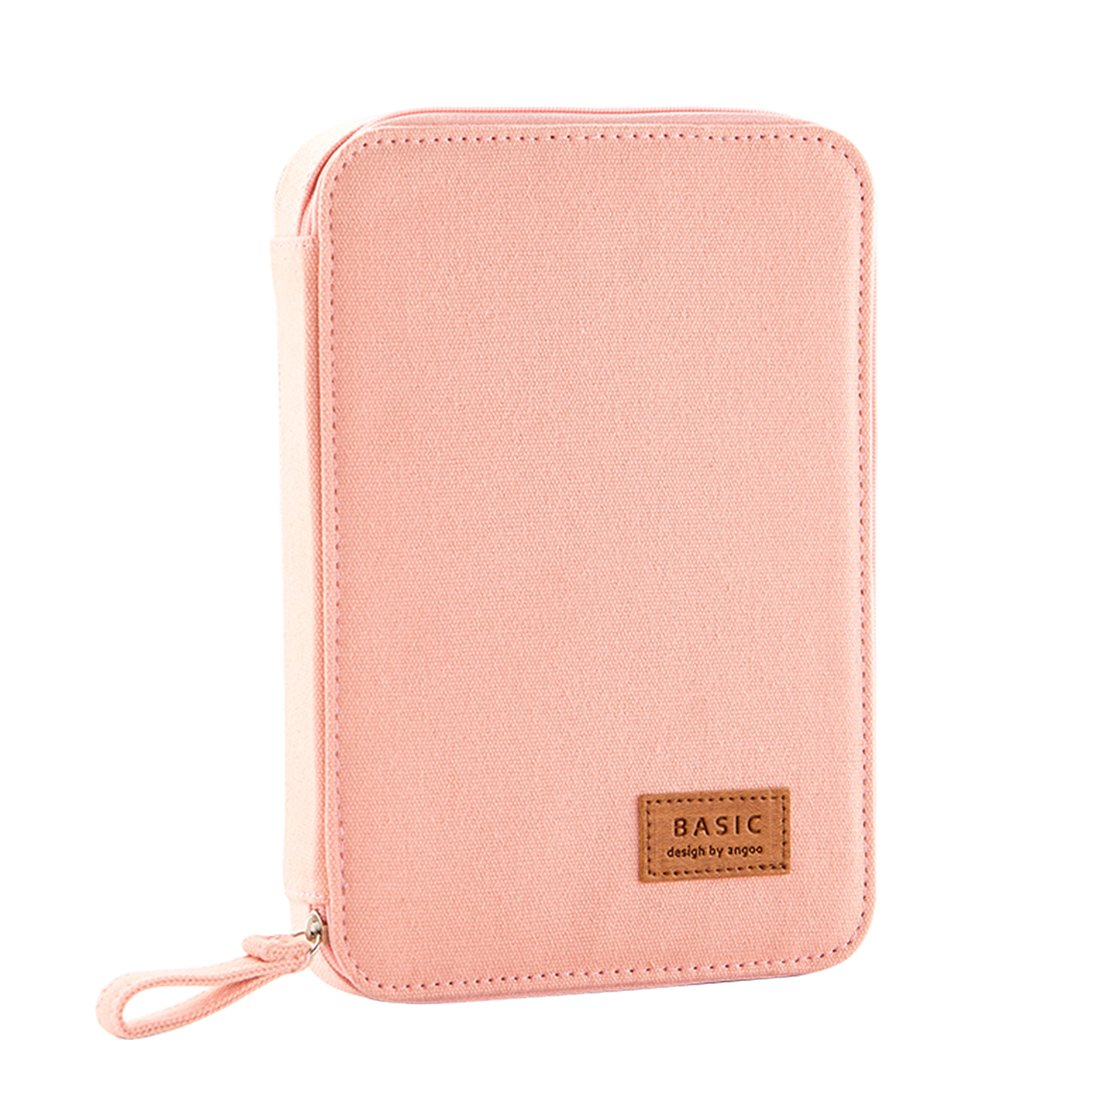 iSuperb Passport Wallet Cover Ticket Travel Bag iPad Bag Student Office Stationery Pencil Organizer Case (Pink)